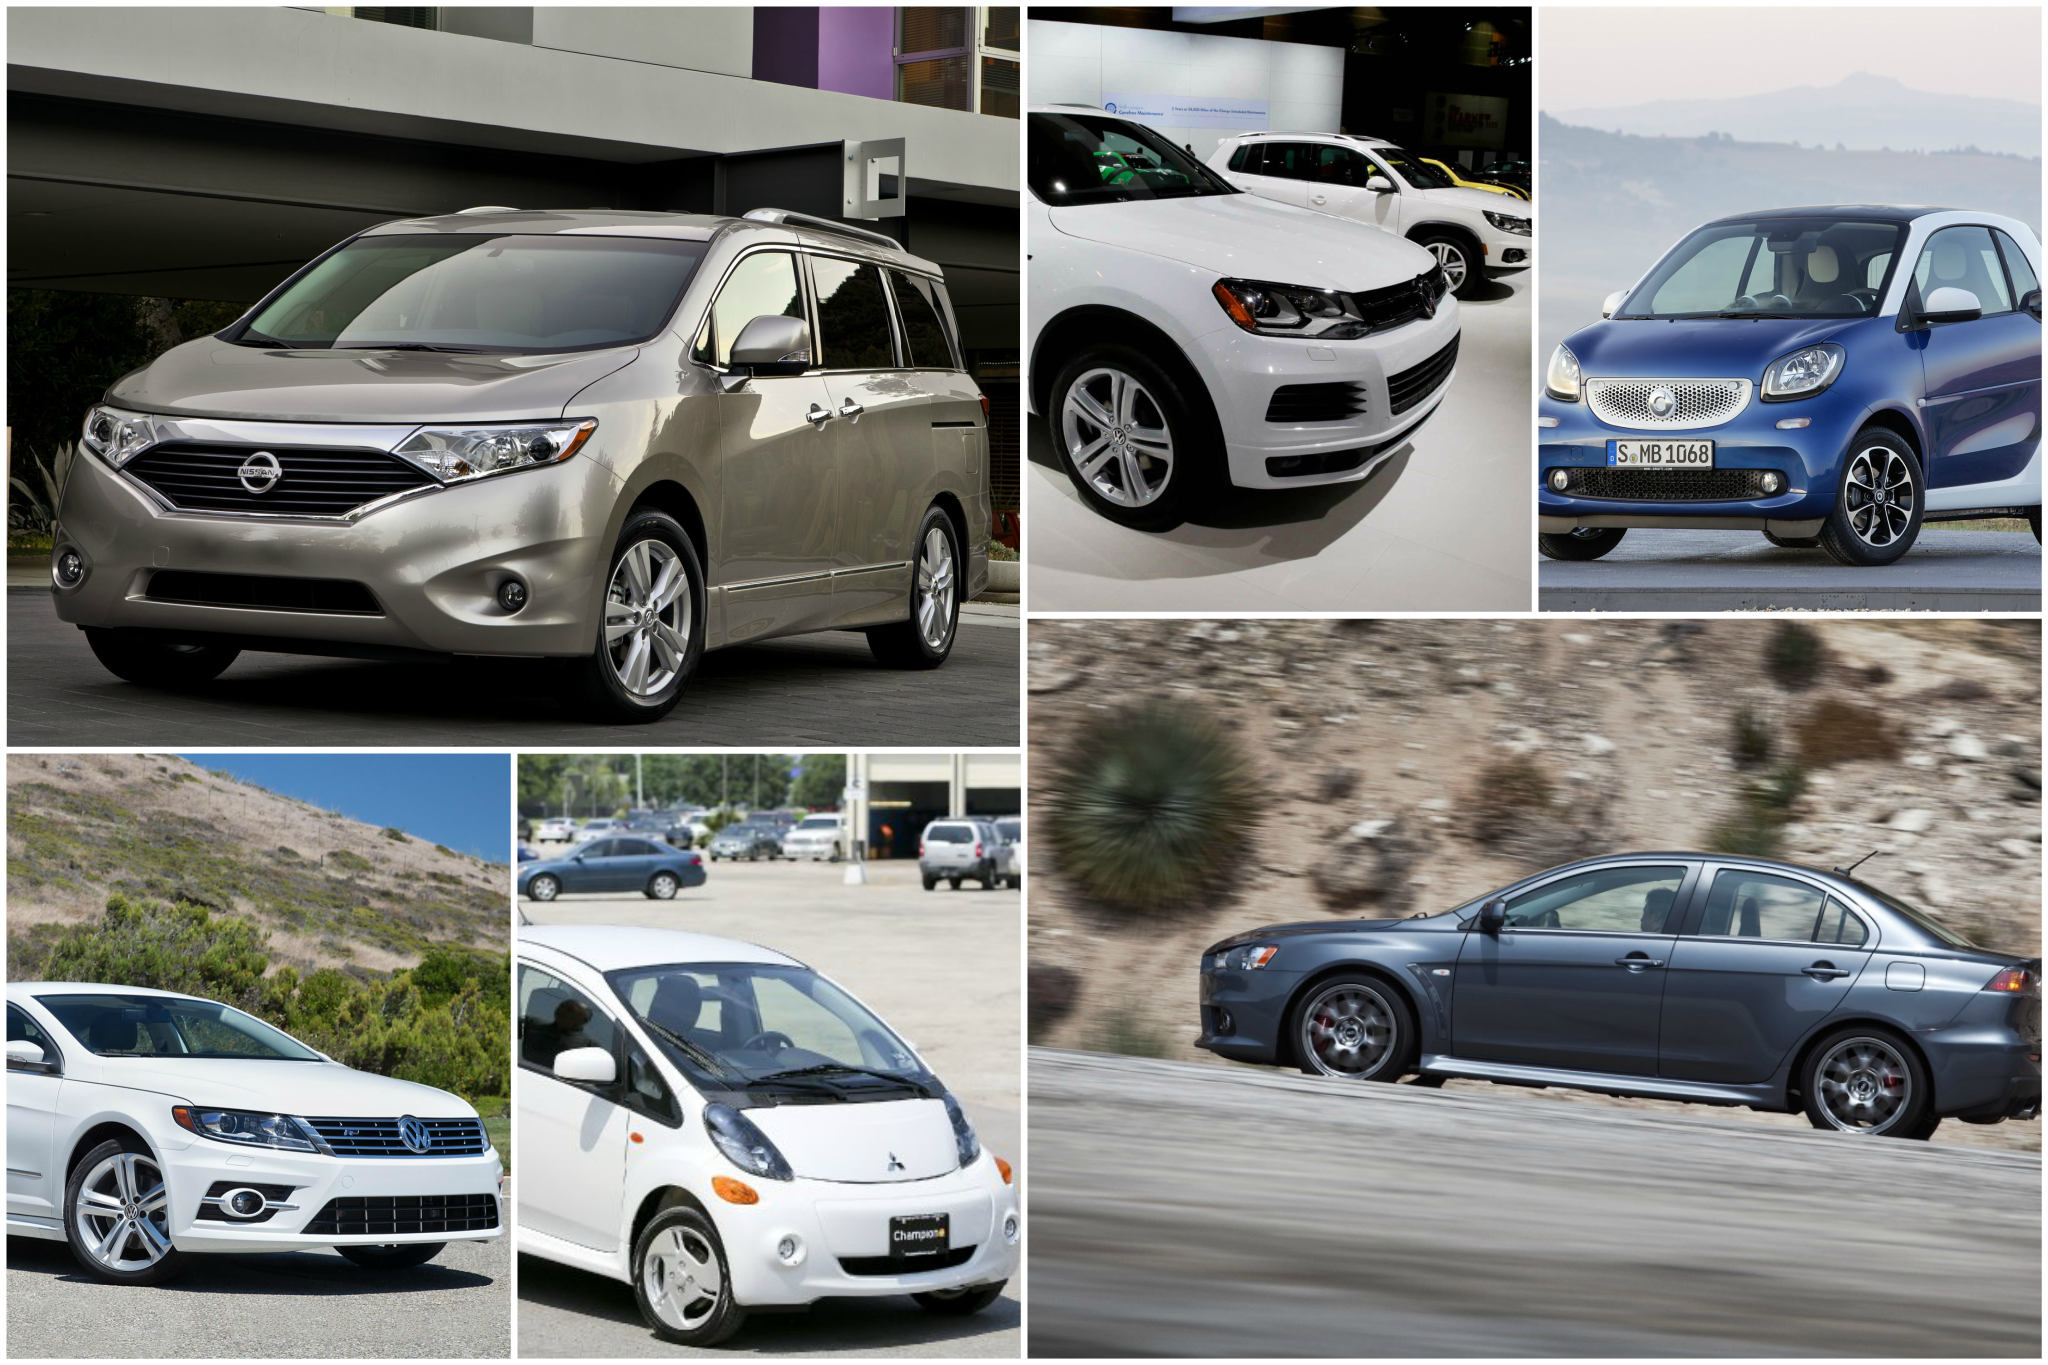 Don't try to look for these vehicles in 2018. They're discontinued